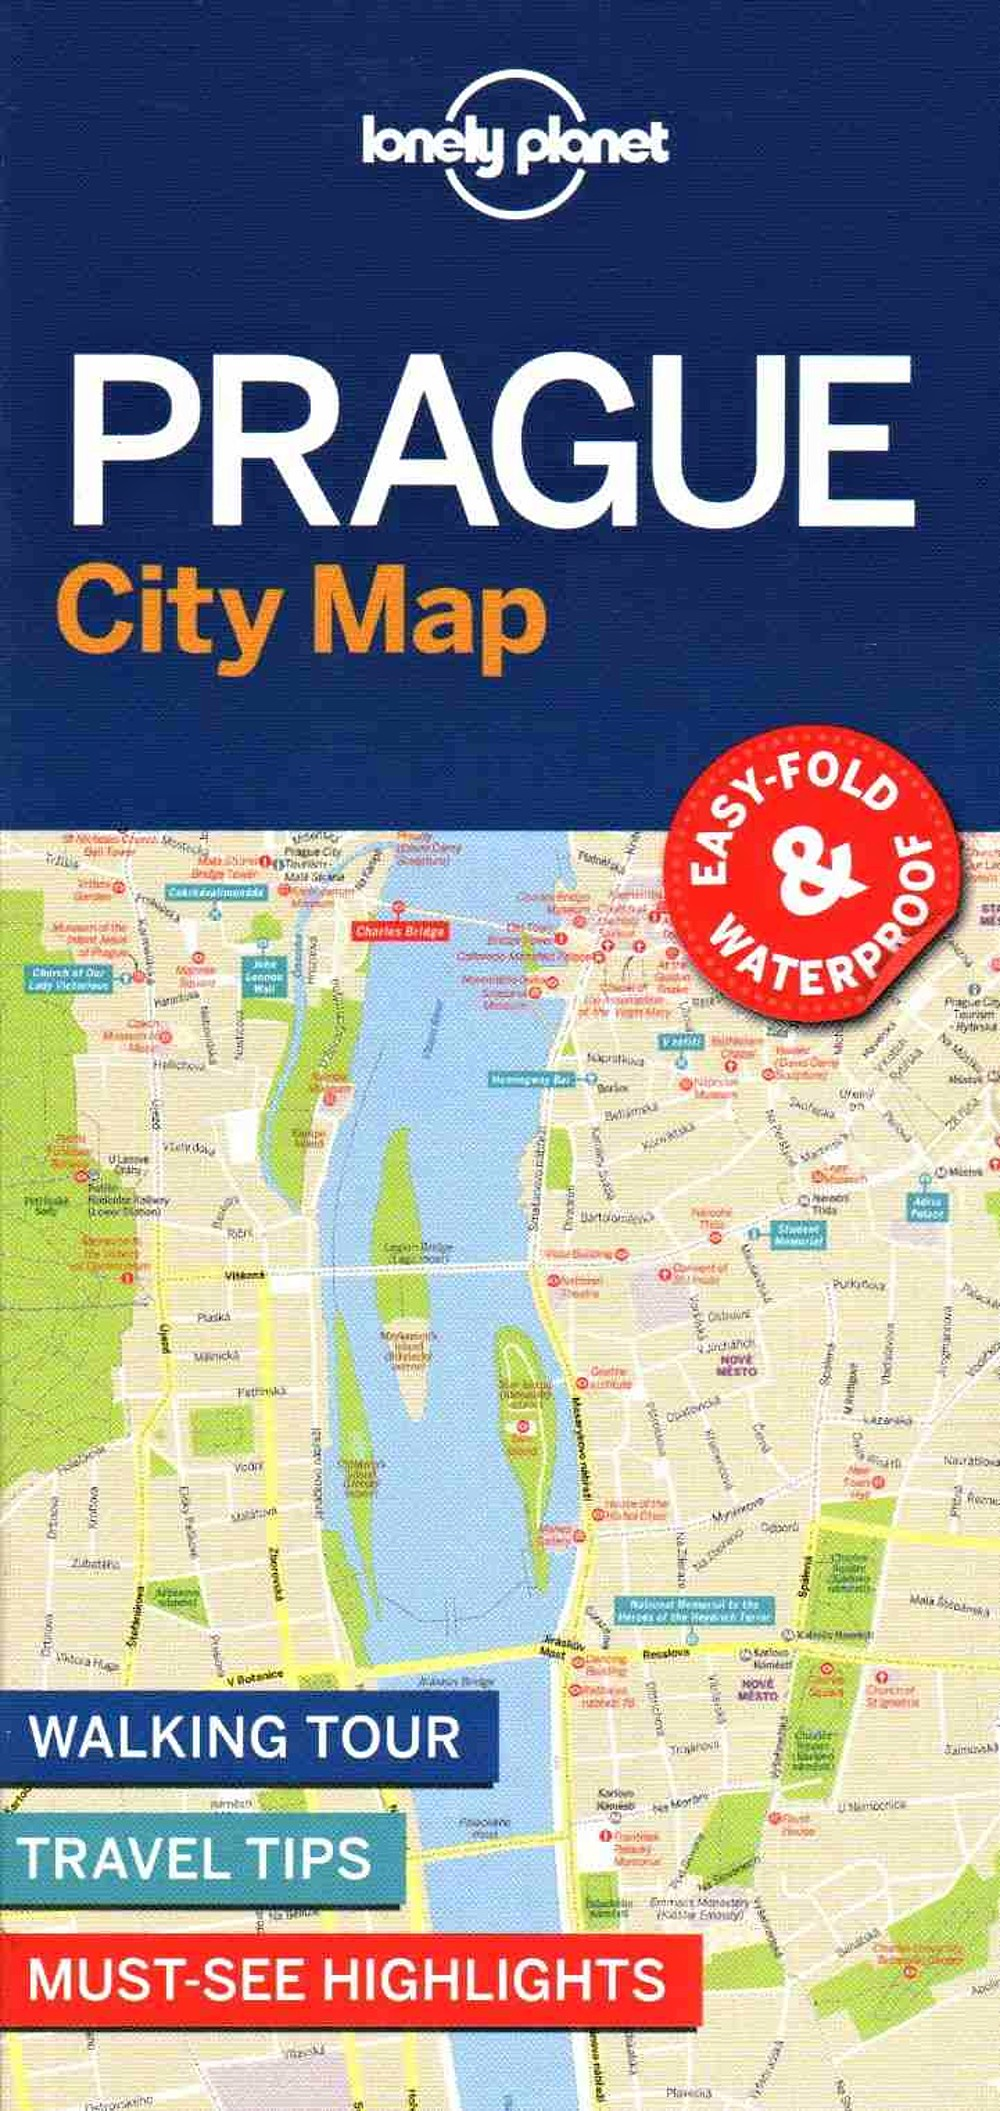 Lonely Planet Prague City Map 1.